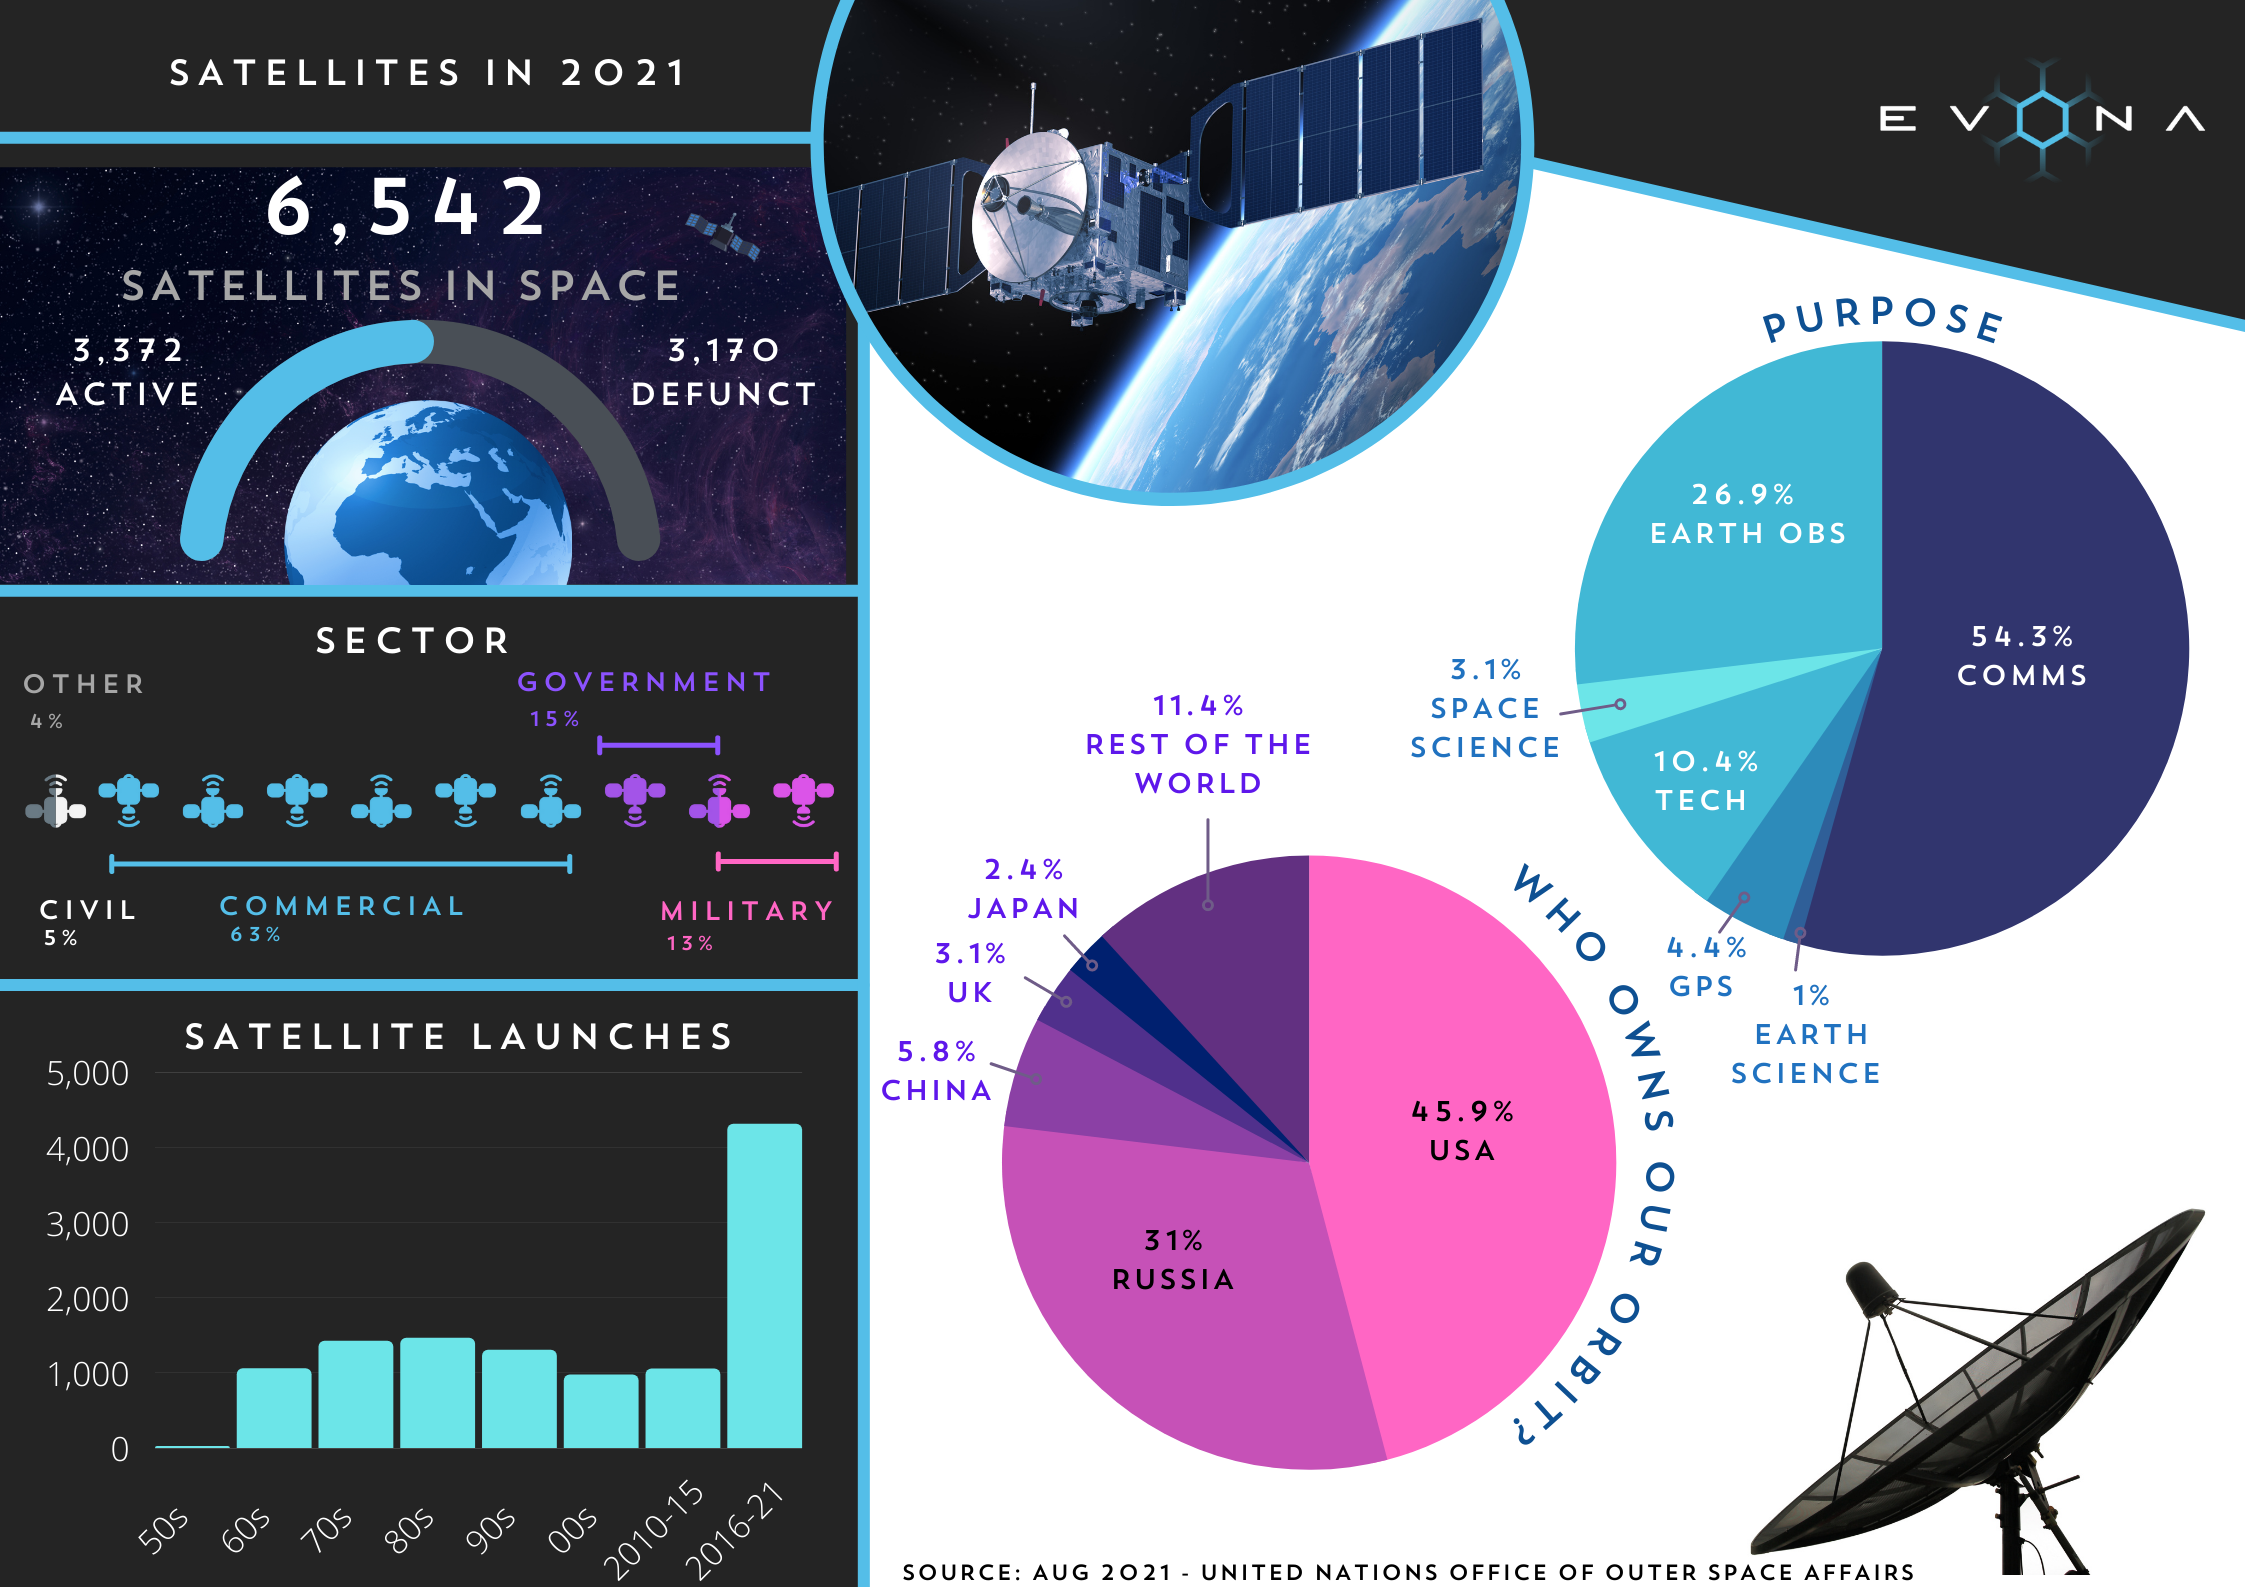 An infogra0phic showing the statistics of satellites in our orbit